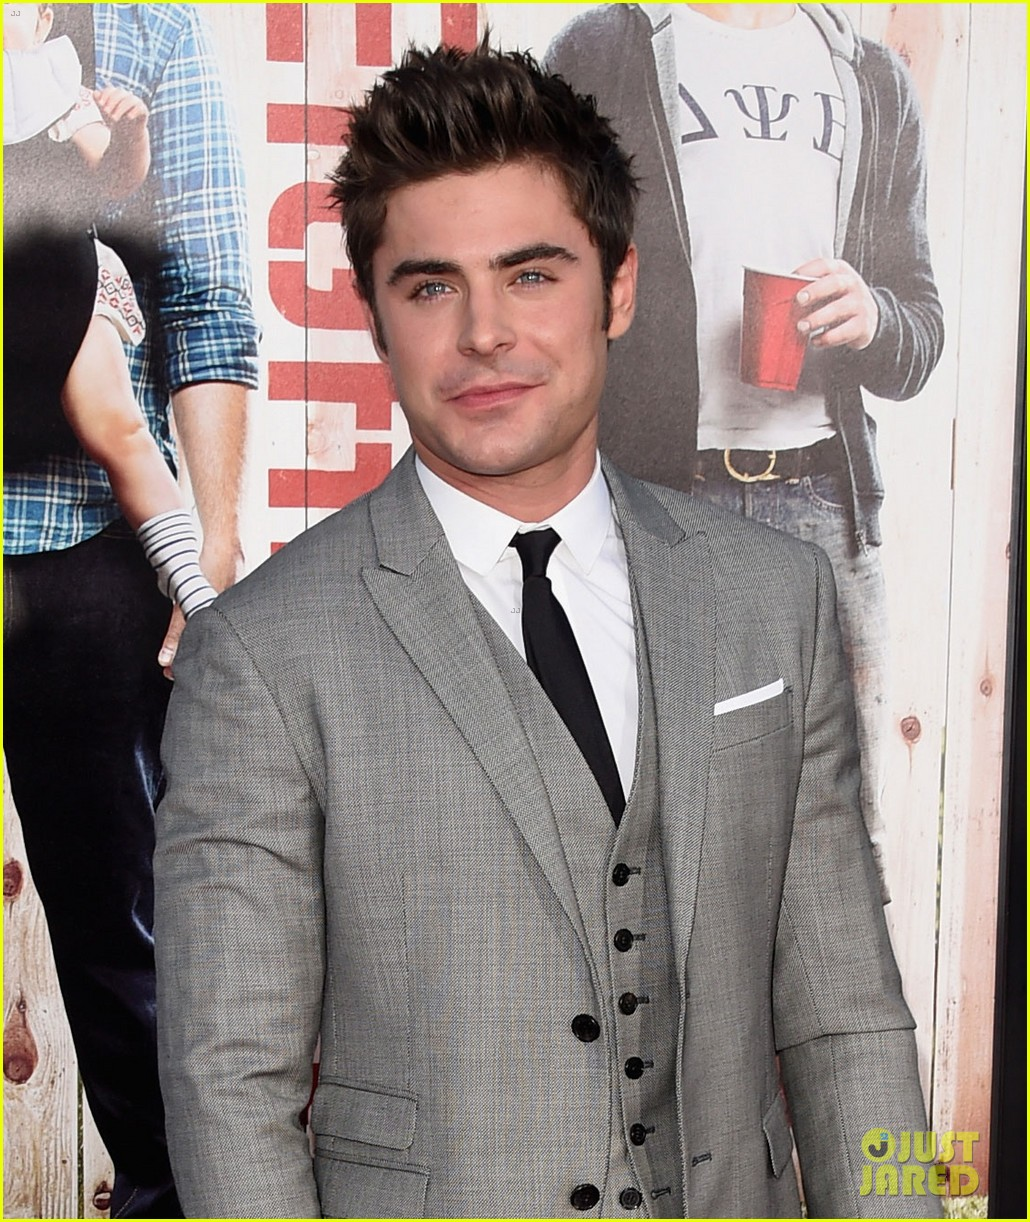 zac efron on star wars role there are irons in the fire 063101085